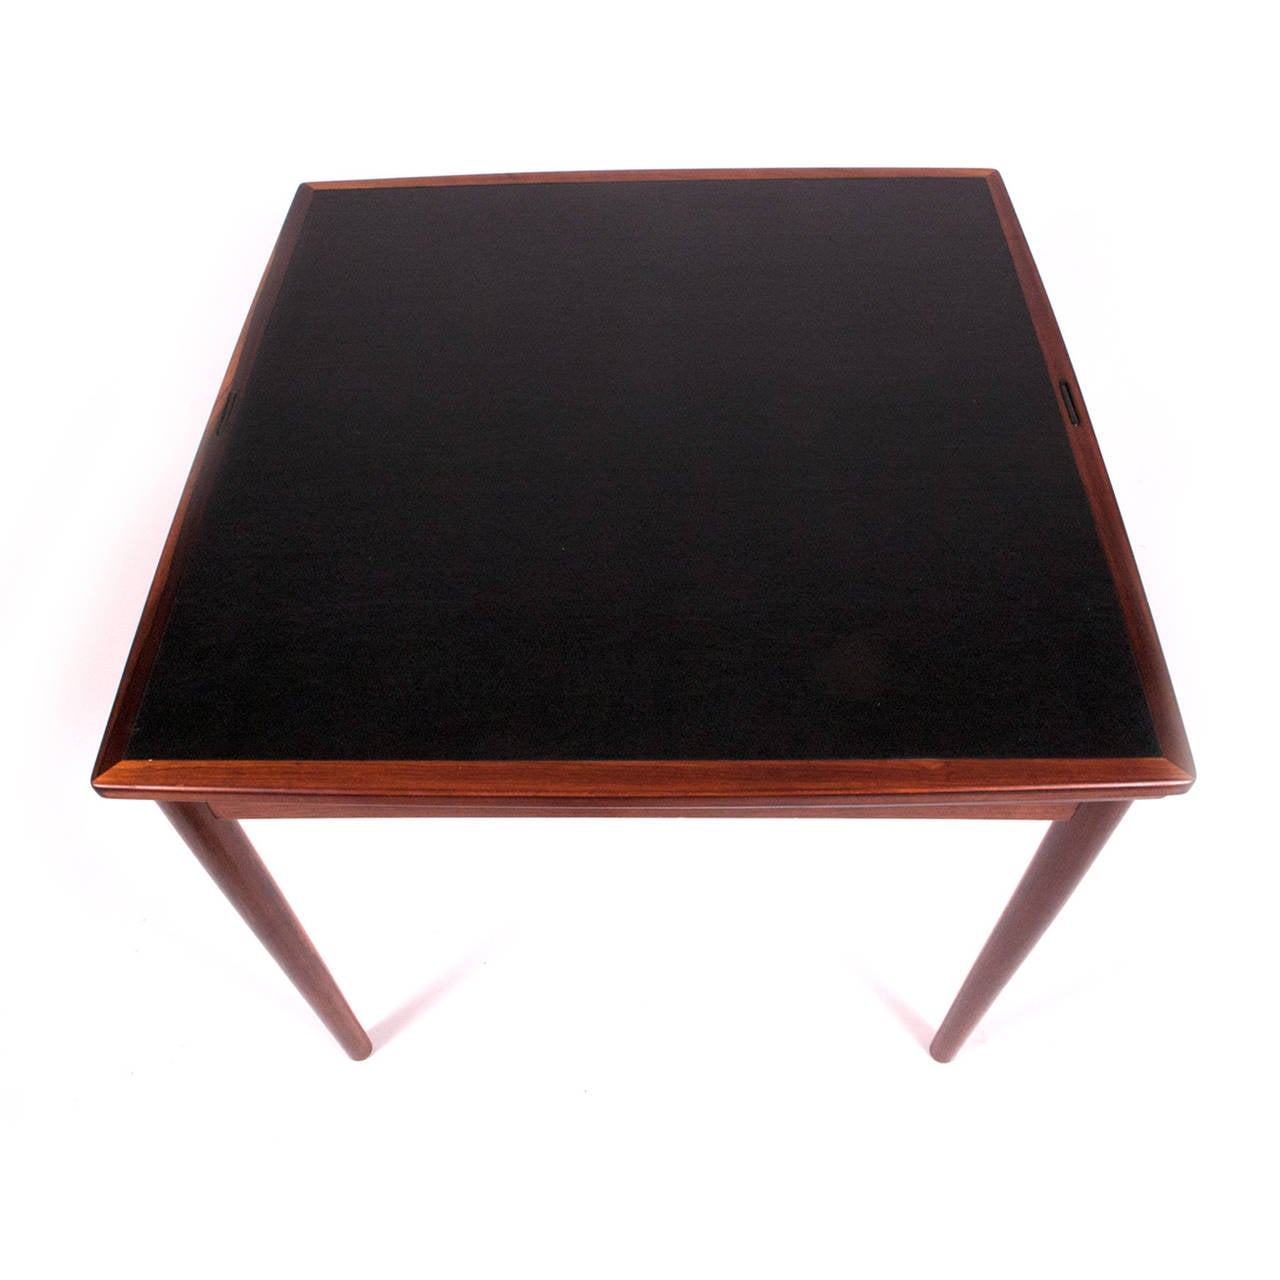 1960s Danish Rosewood Sign Game Table Design by Poul Hundevad In Good Condition For Sale In Dallas, TX